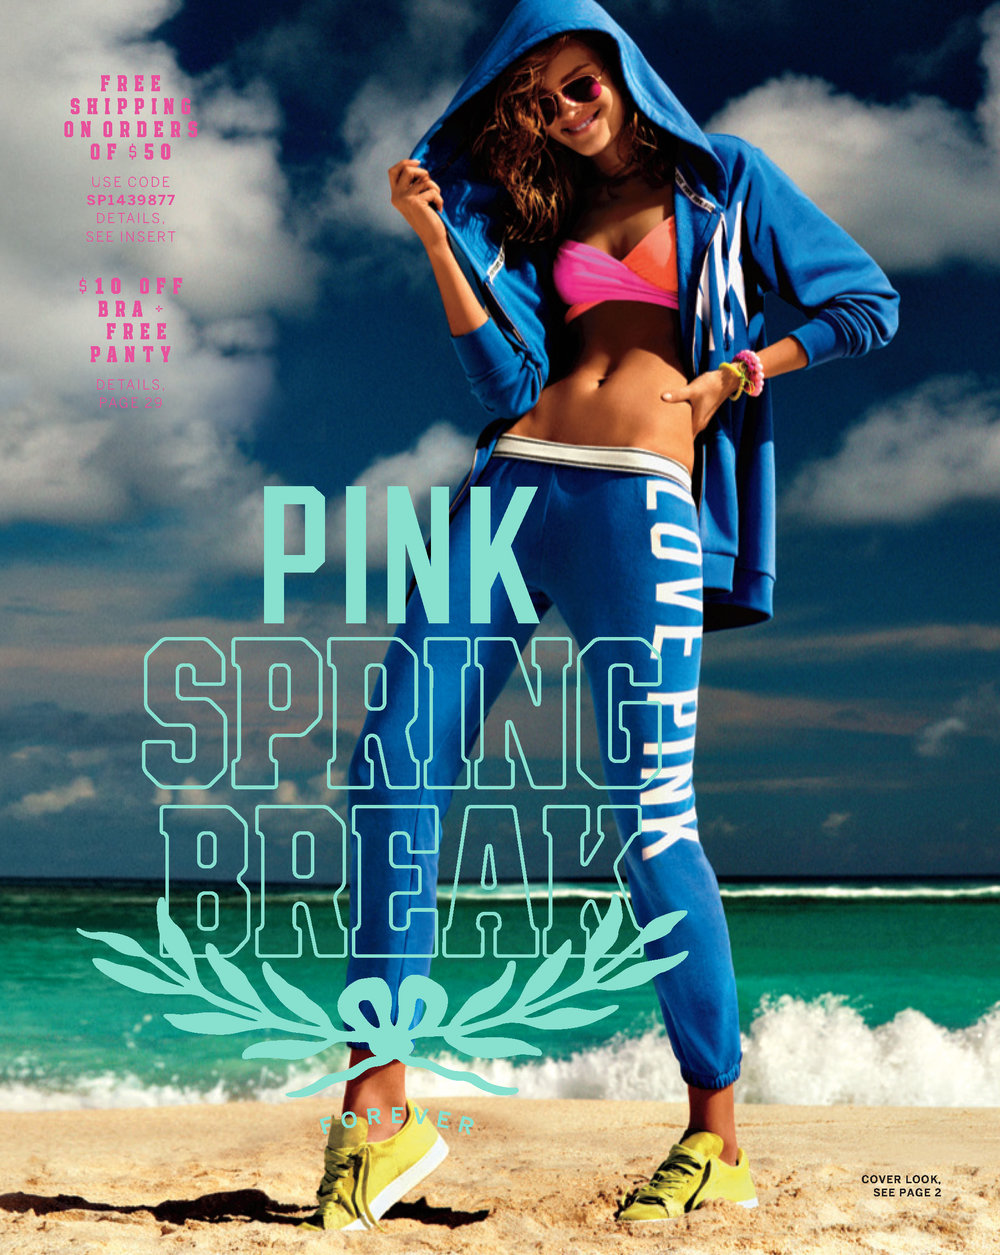 PINK Book_Spring 2014_Cover.jpg